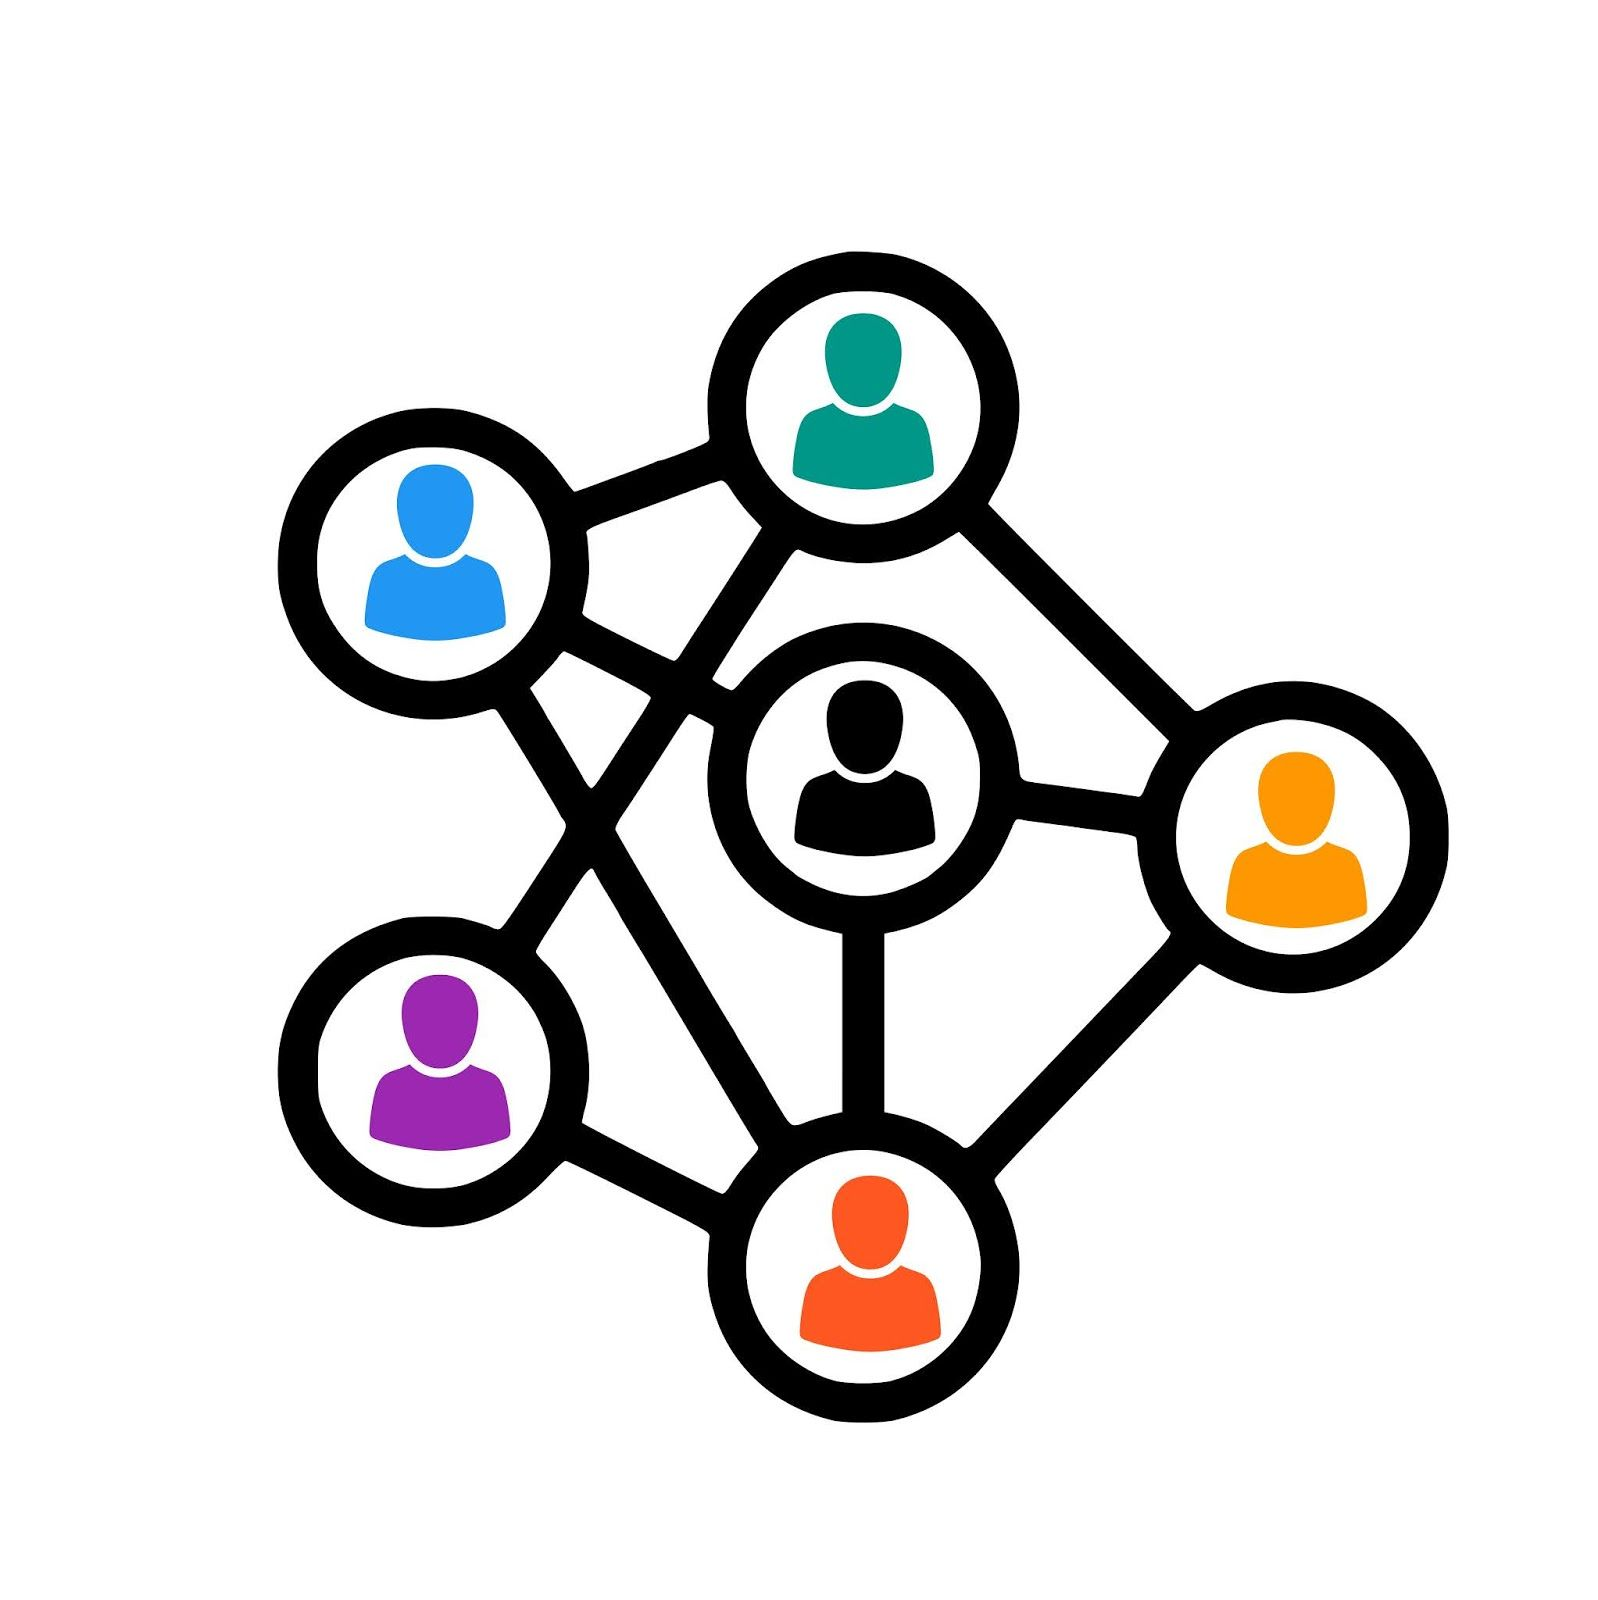 Network icon people How to